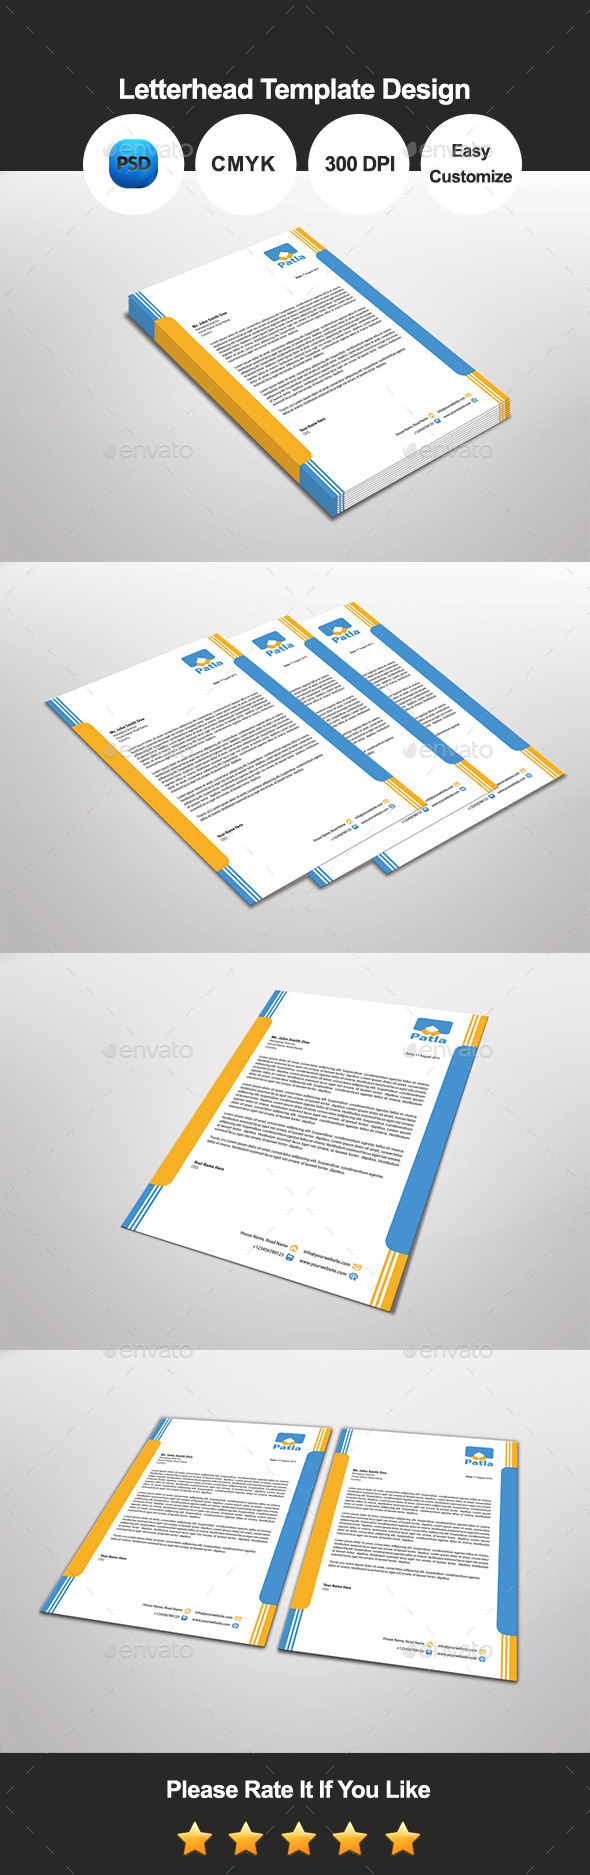 Patla Letterhead Template Design - Proposals & Invoices Stationery